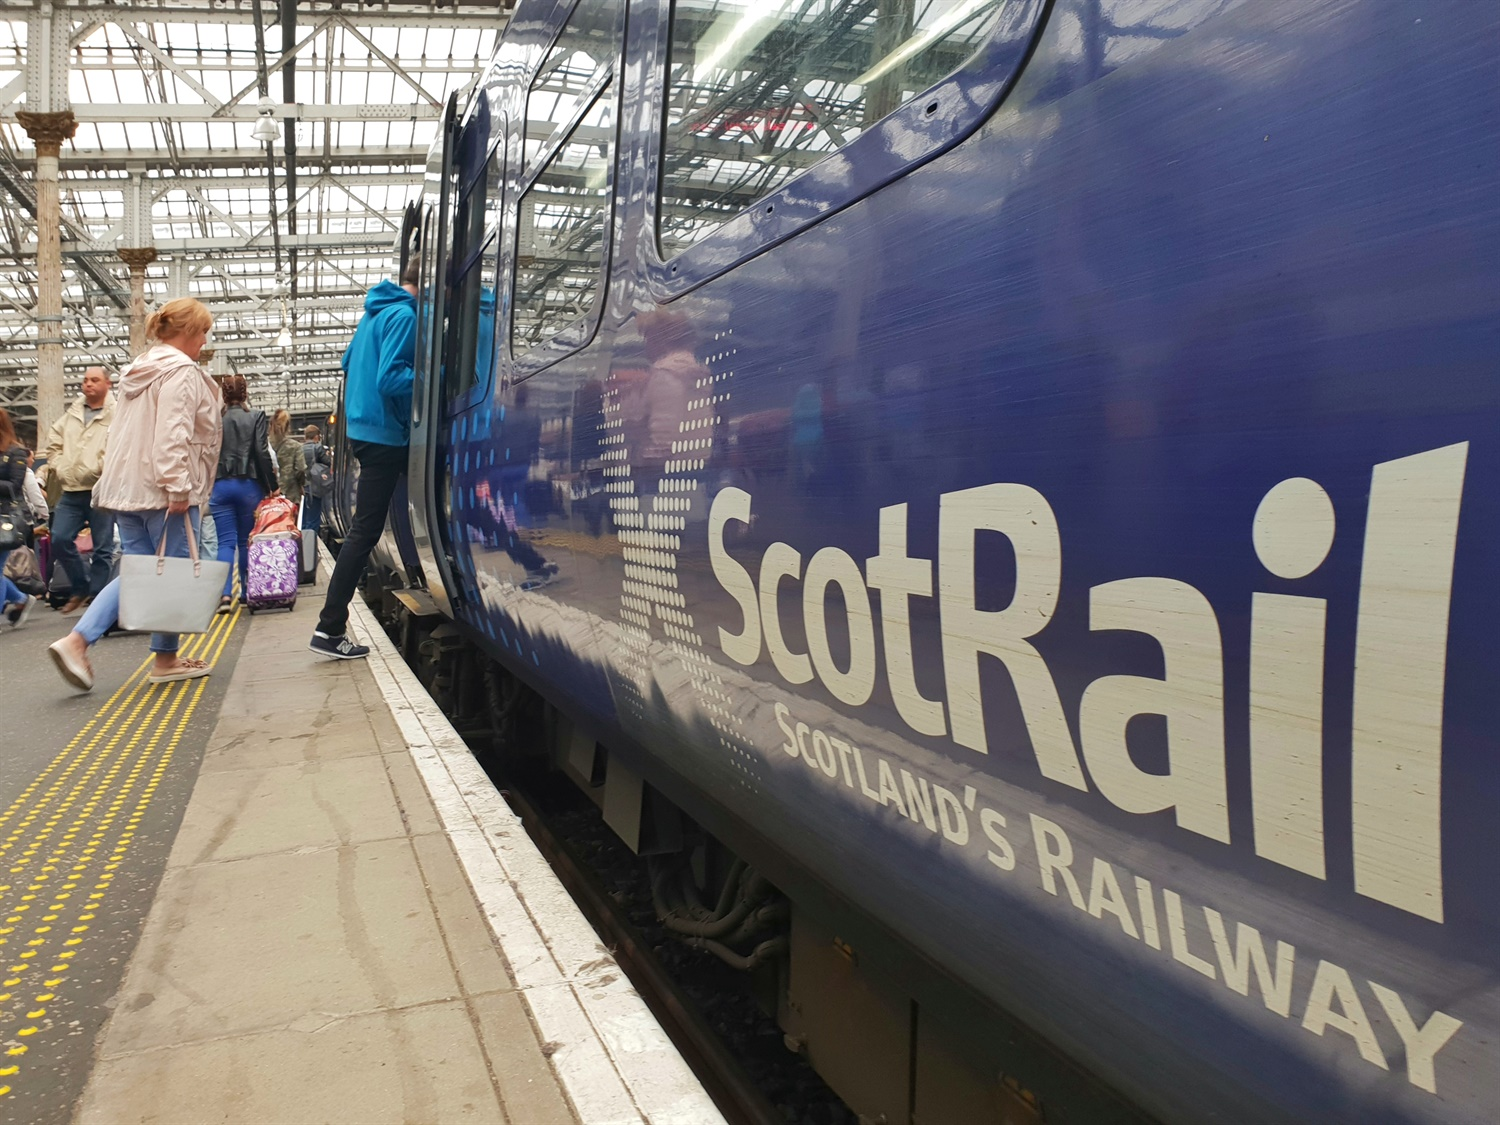 Labour call for renationalisation ahead of Scottish Parliament vote on ScotRail contract